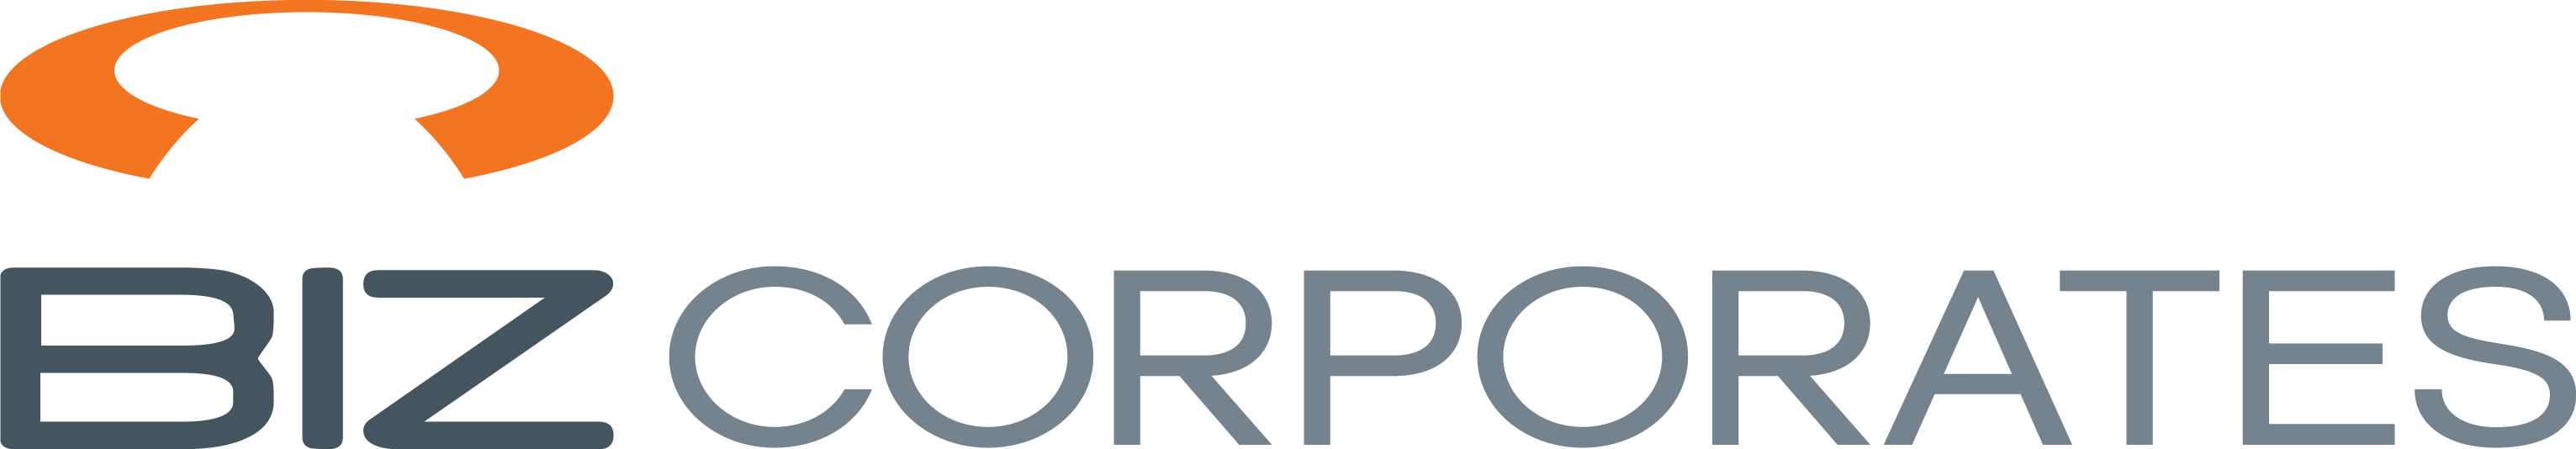 Biz-Corporates-Logo